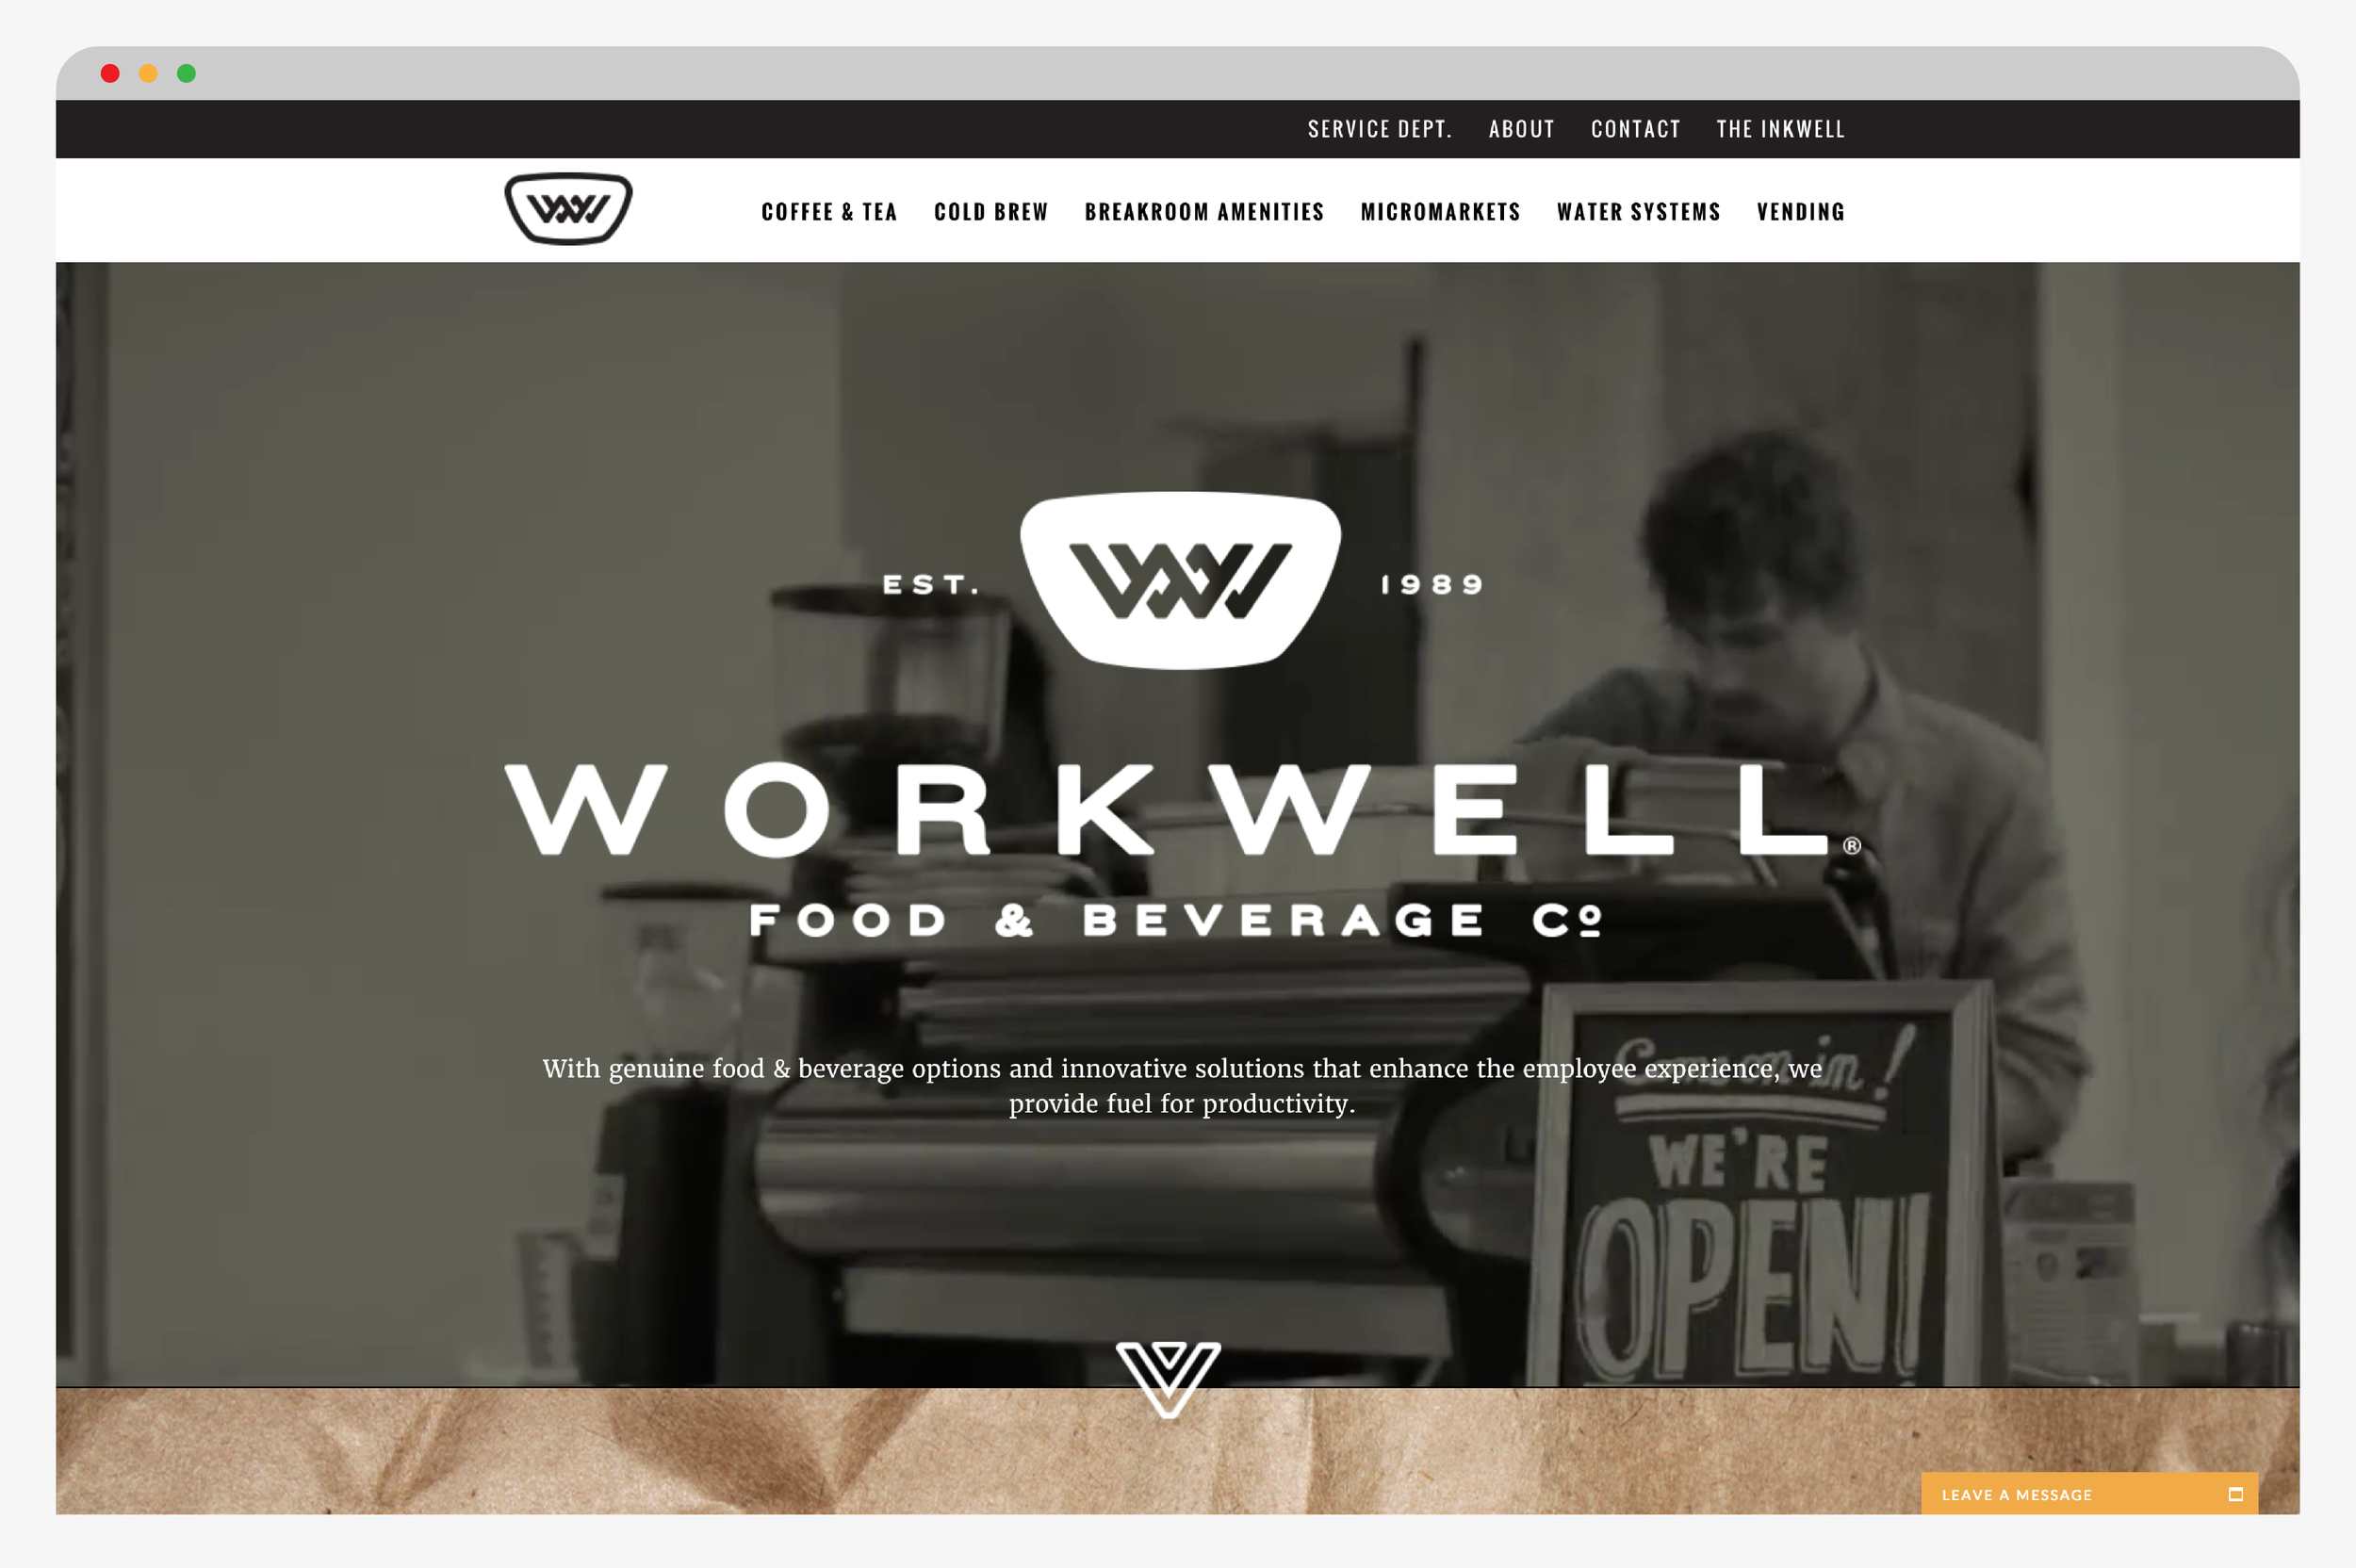 website-workwell-images-05.png